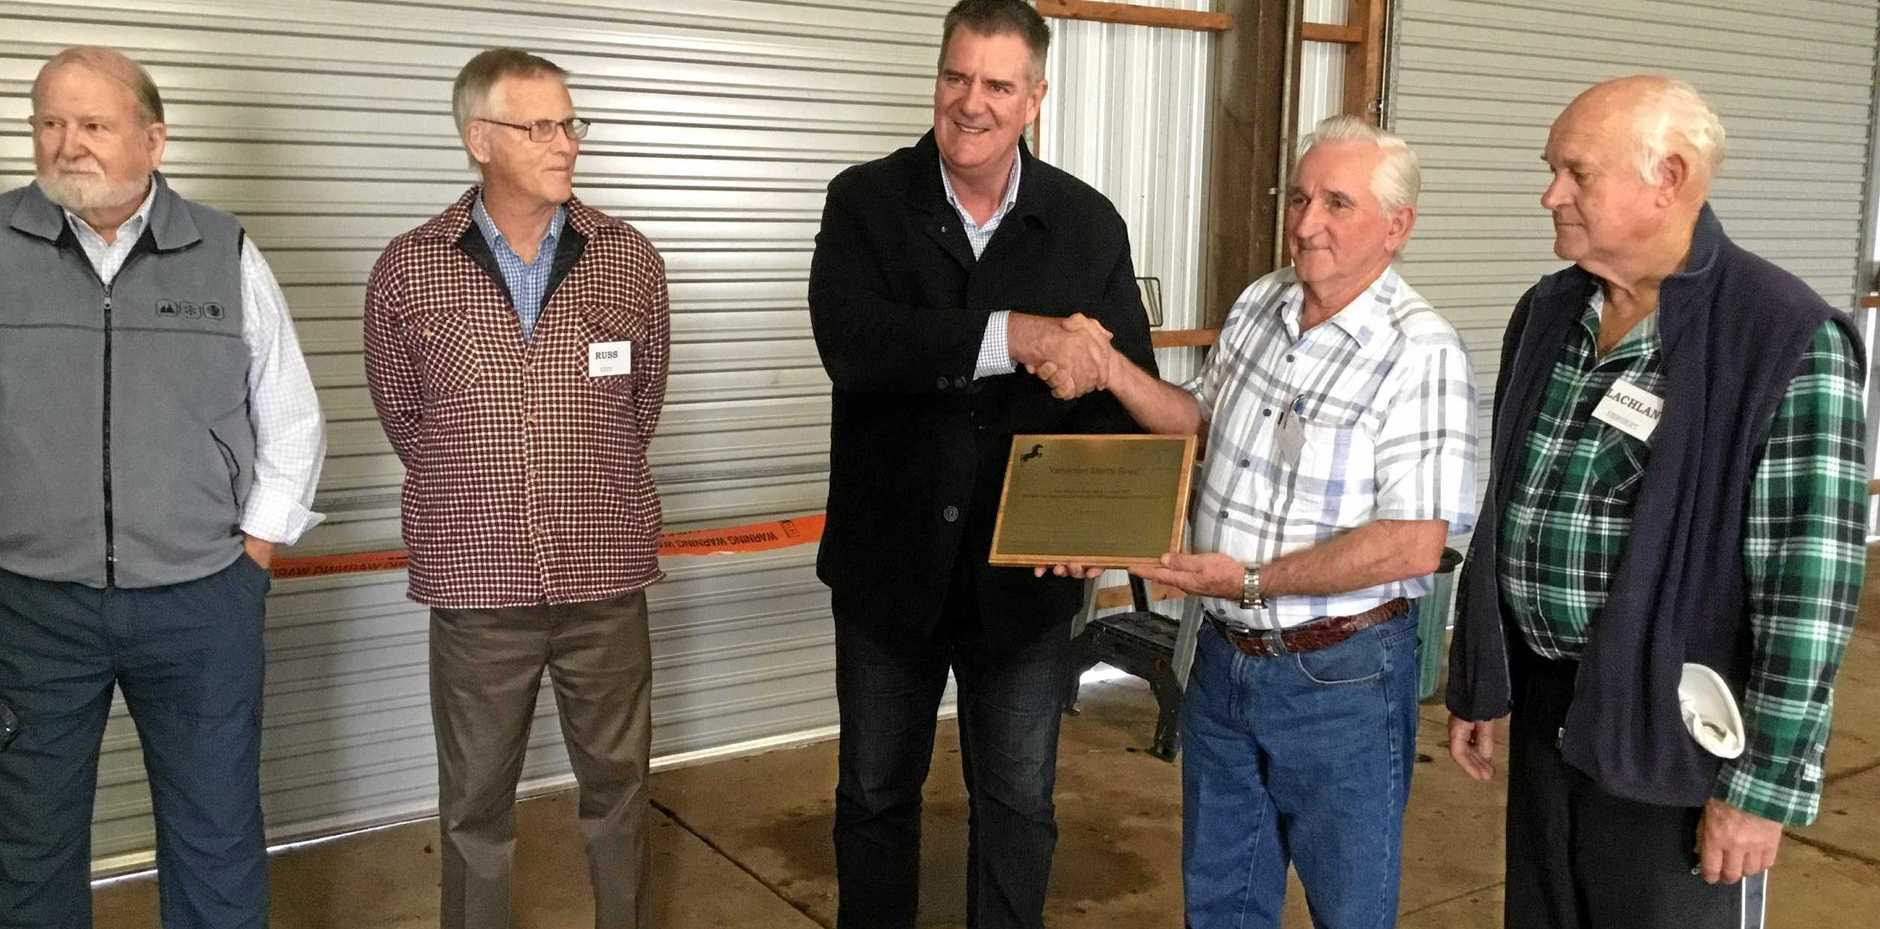 NEW HOME: Agricultural Industry Development and Fisheries minister Mark Furner congratulates the Yarraman Men's Shed members on their new location, the Mill St Workshop.